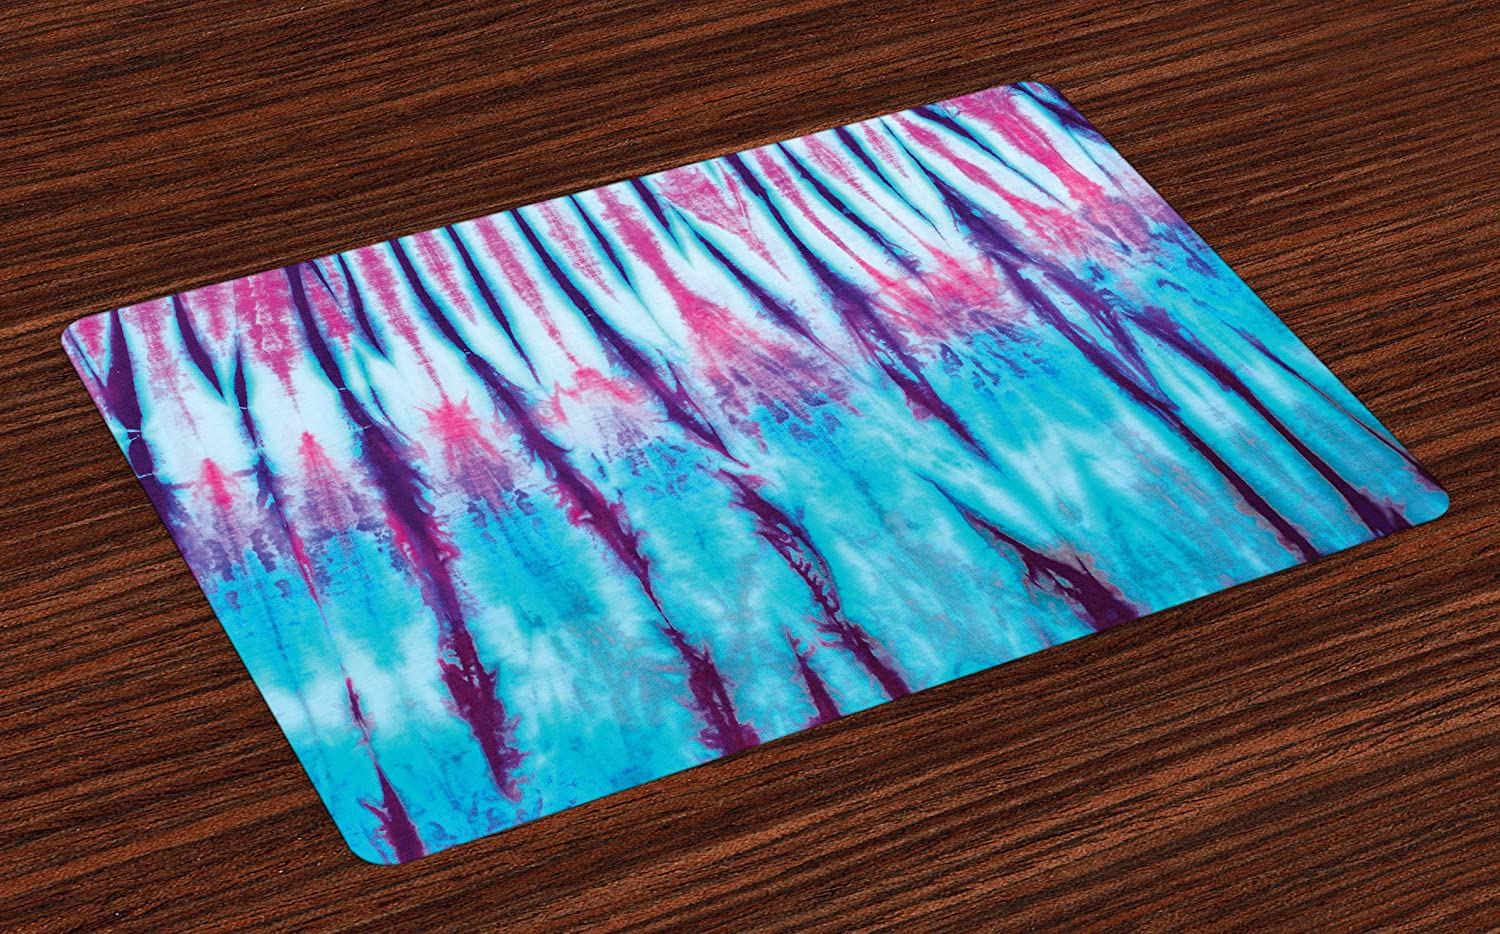 Ambesonne Ethnic Place Mats Set of 4, Close Up of Vertical Gradient Tie Dye Effect Hippie Alter Life Retro Artwork Print, Washable Fabric Placemats for Dining Room Kitchen Table Decor, Blue Pink